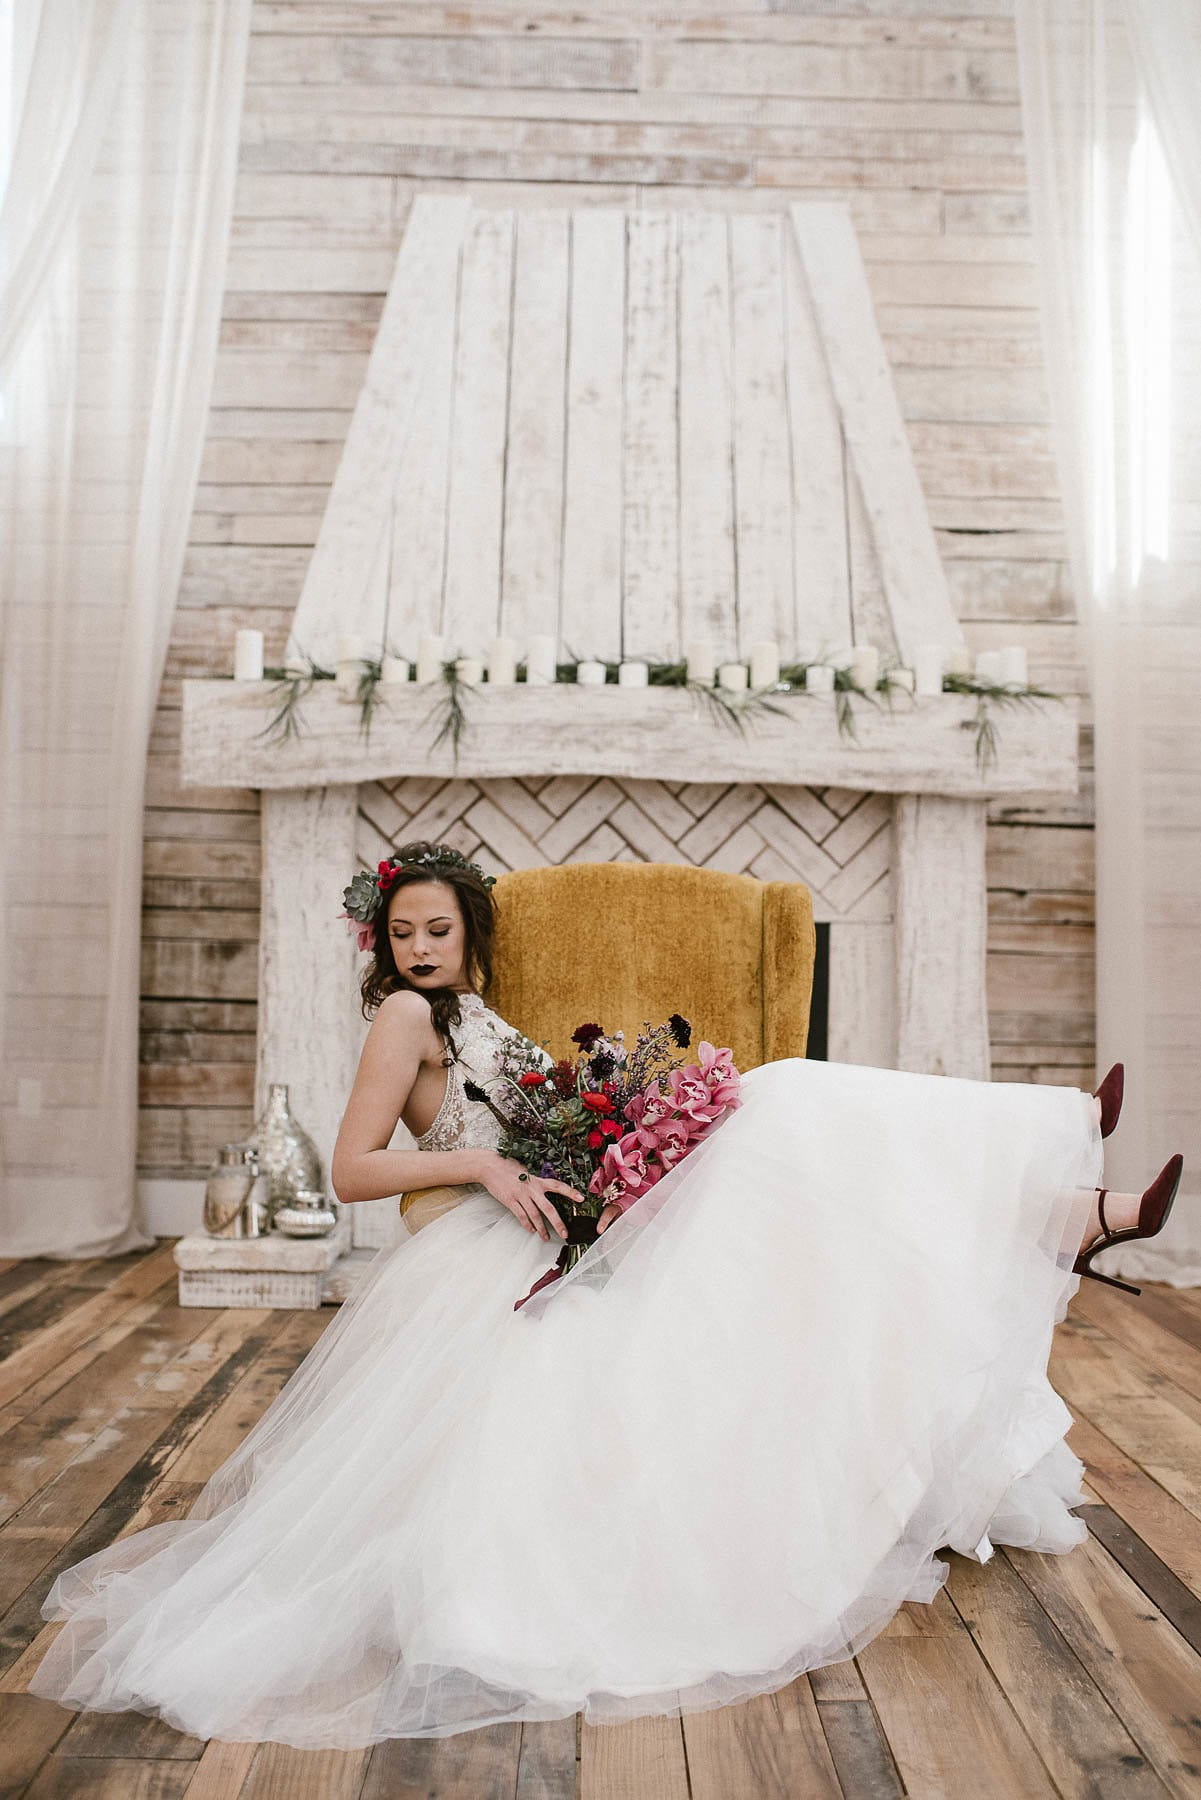 Princess Wedding Dress in Moody Styled Shoot With Jewel-toned Florals - Fall in Love with Gowns for the Romantic, Edgy, and Elegant Bride